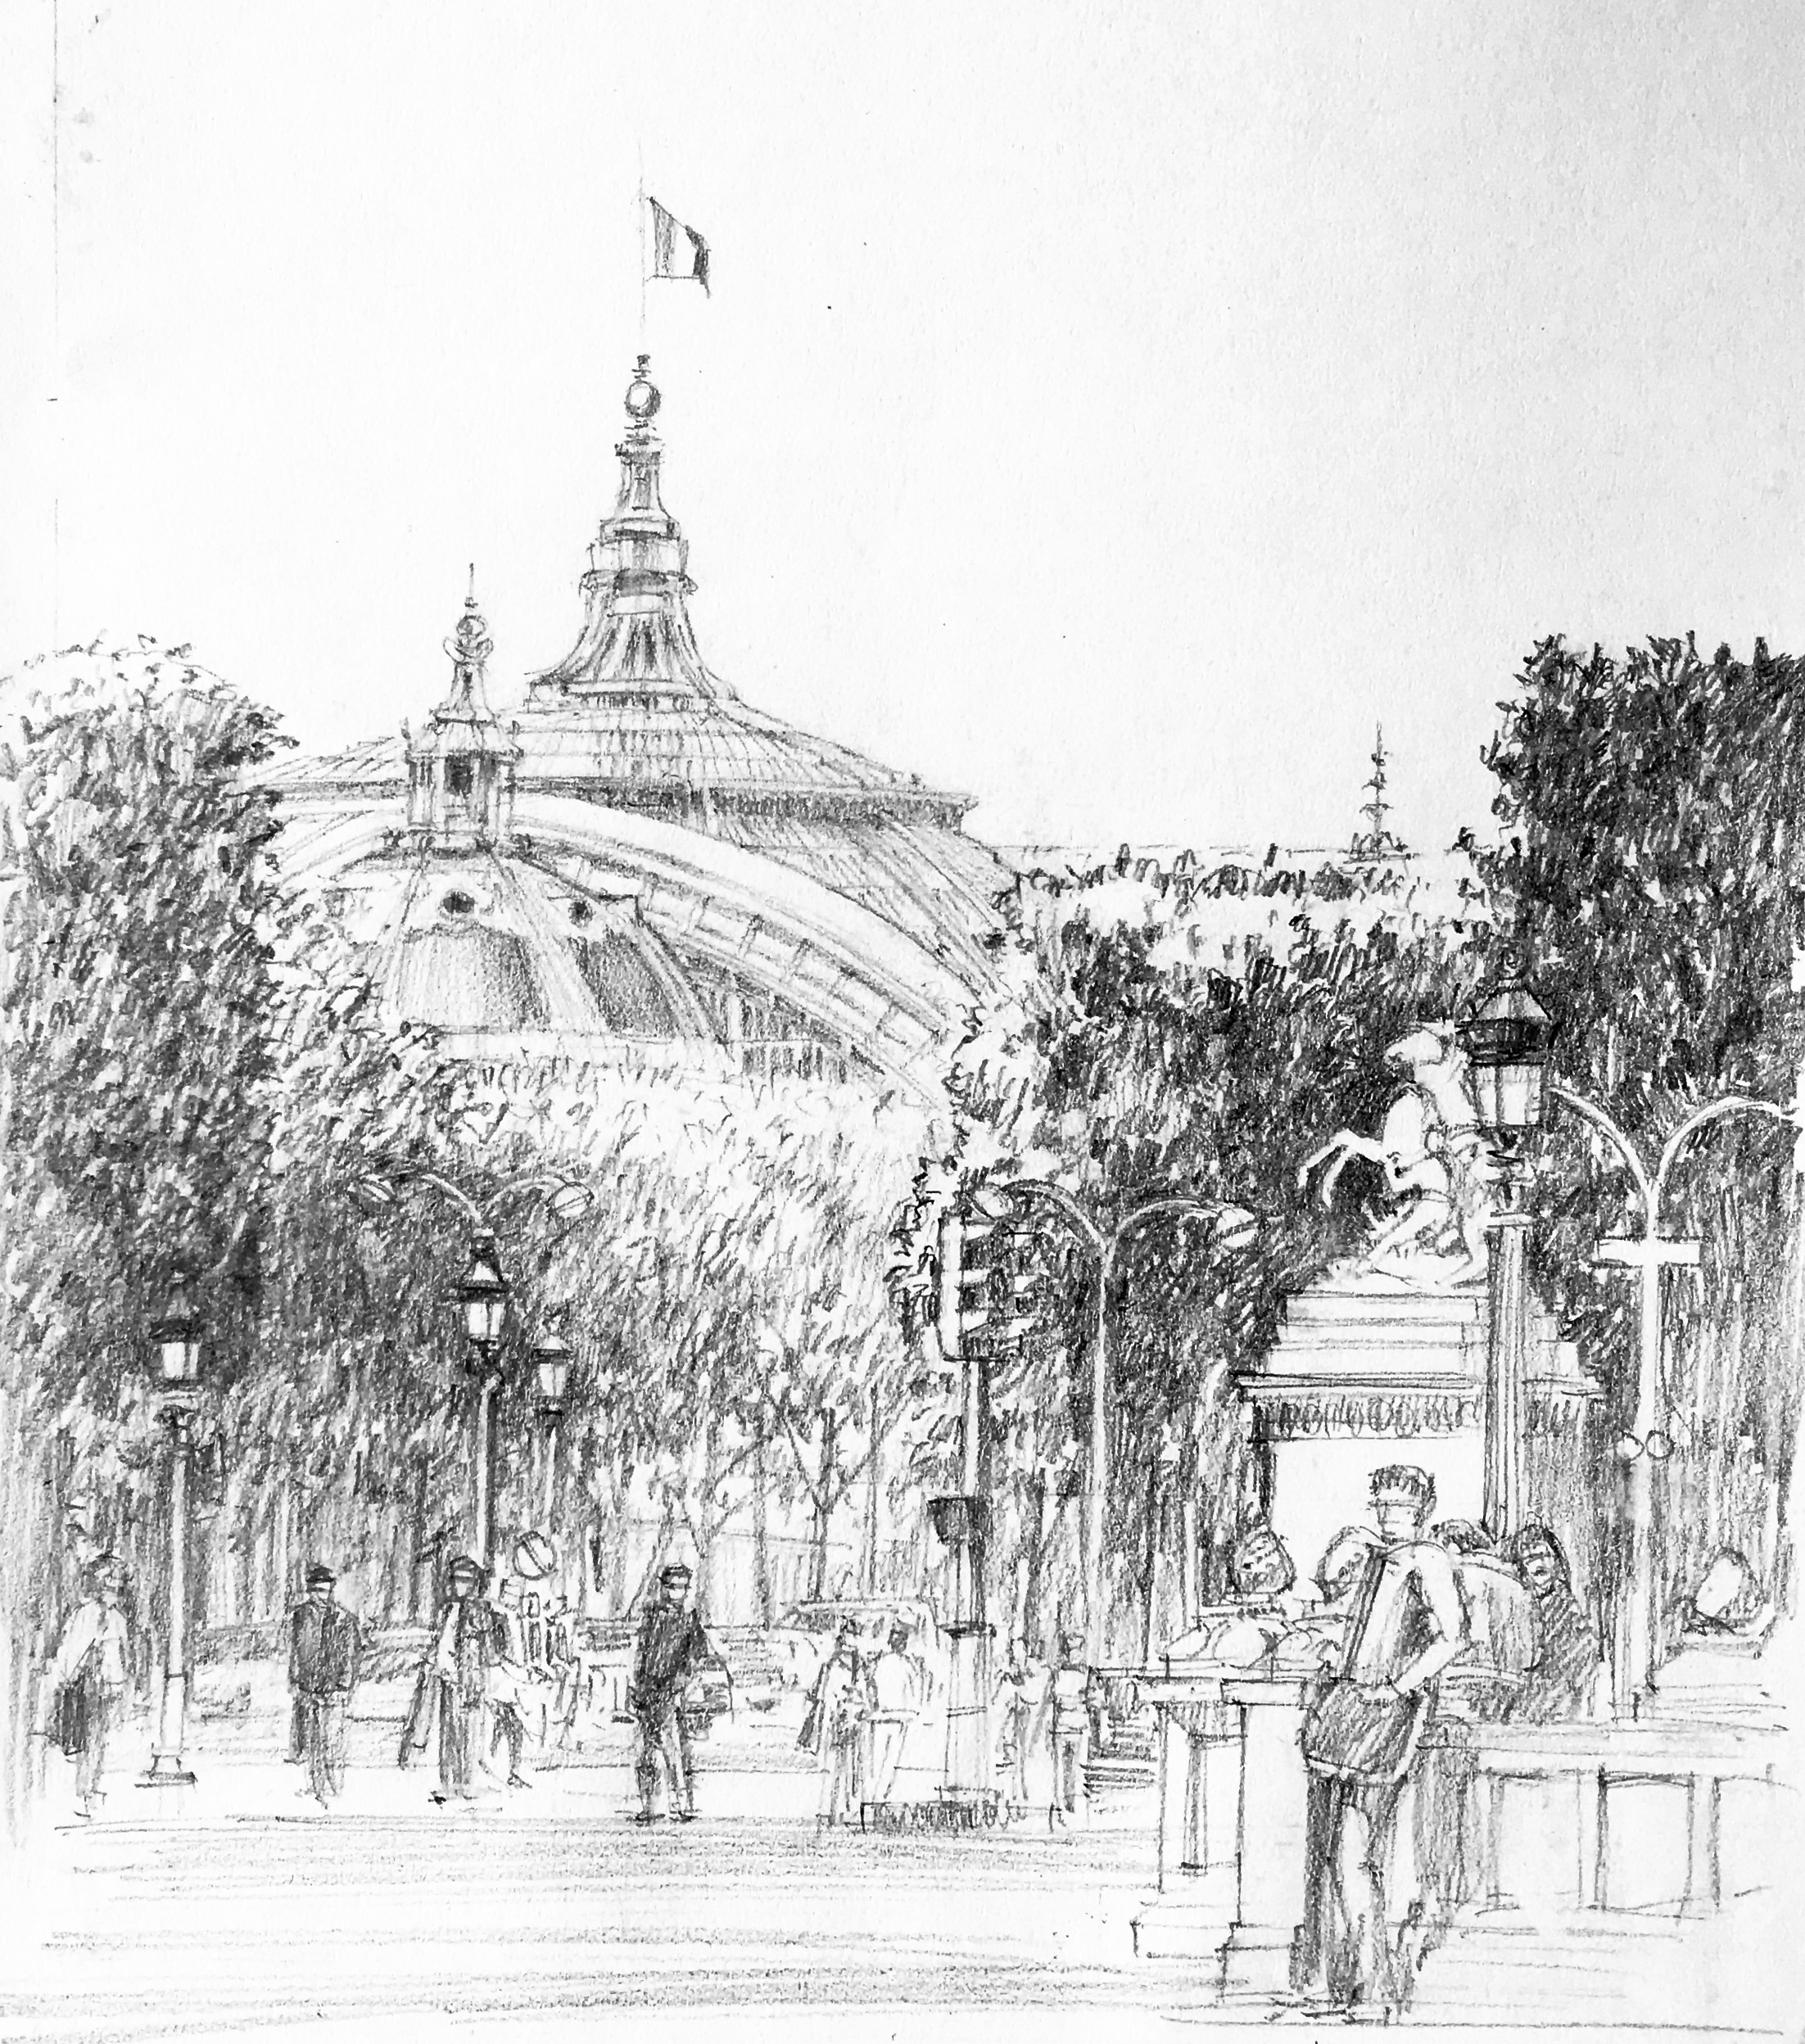 Grand Palais sketch with equestrian statue drawn by negative space.